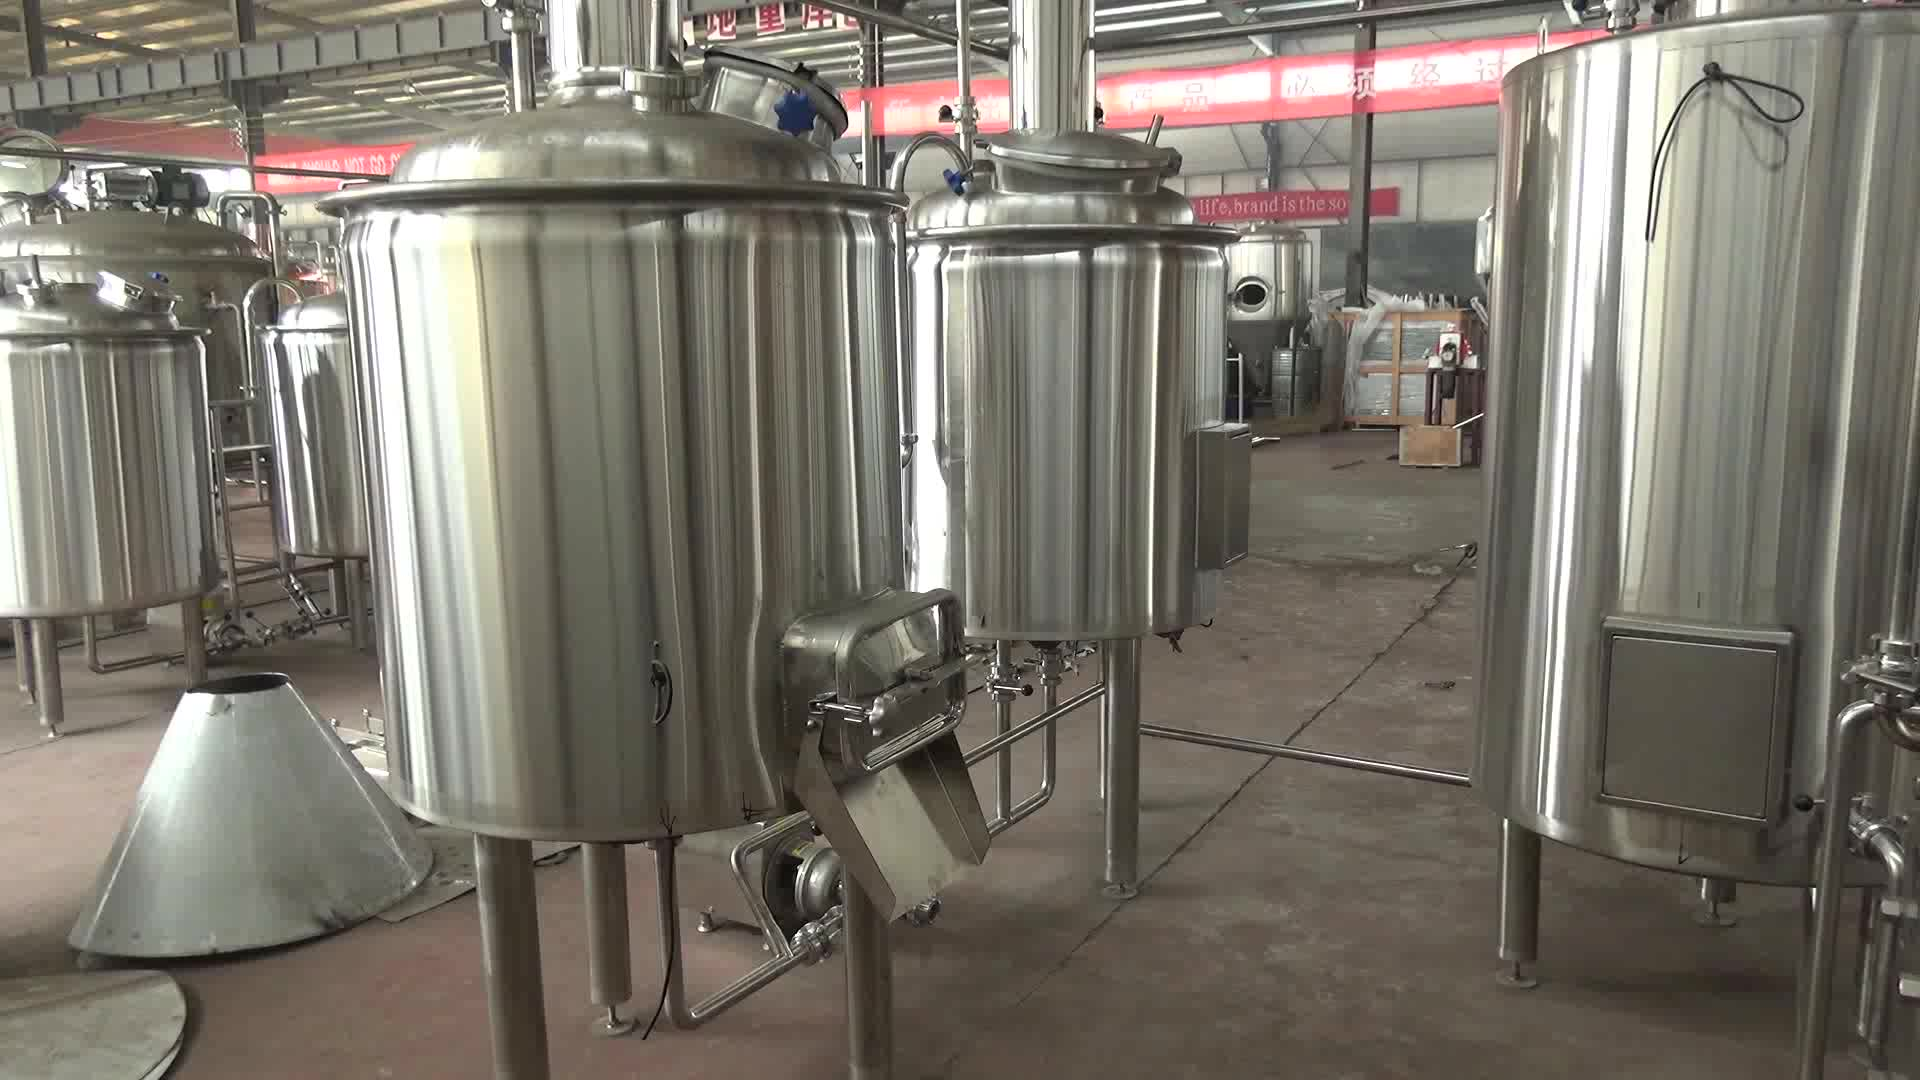 Bar Restaurant Brewery Build Craft Micro Commercial Beer Brewing Equipment For Sale